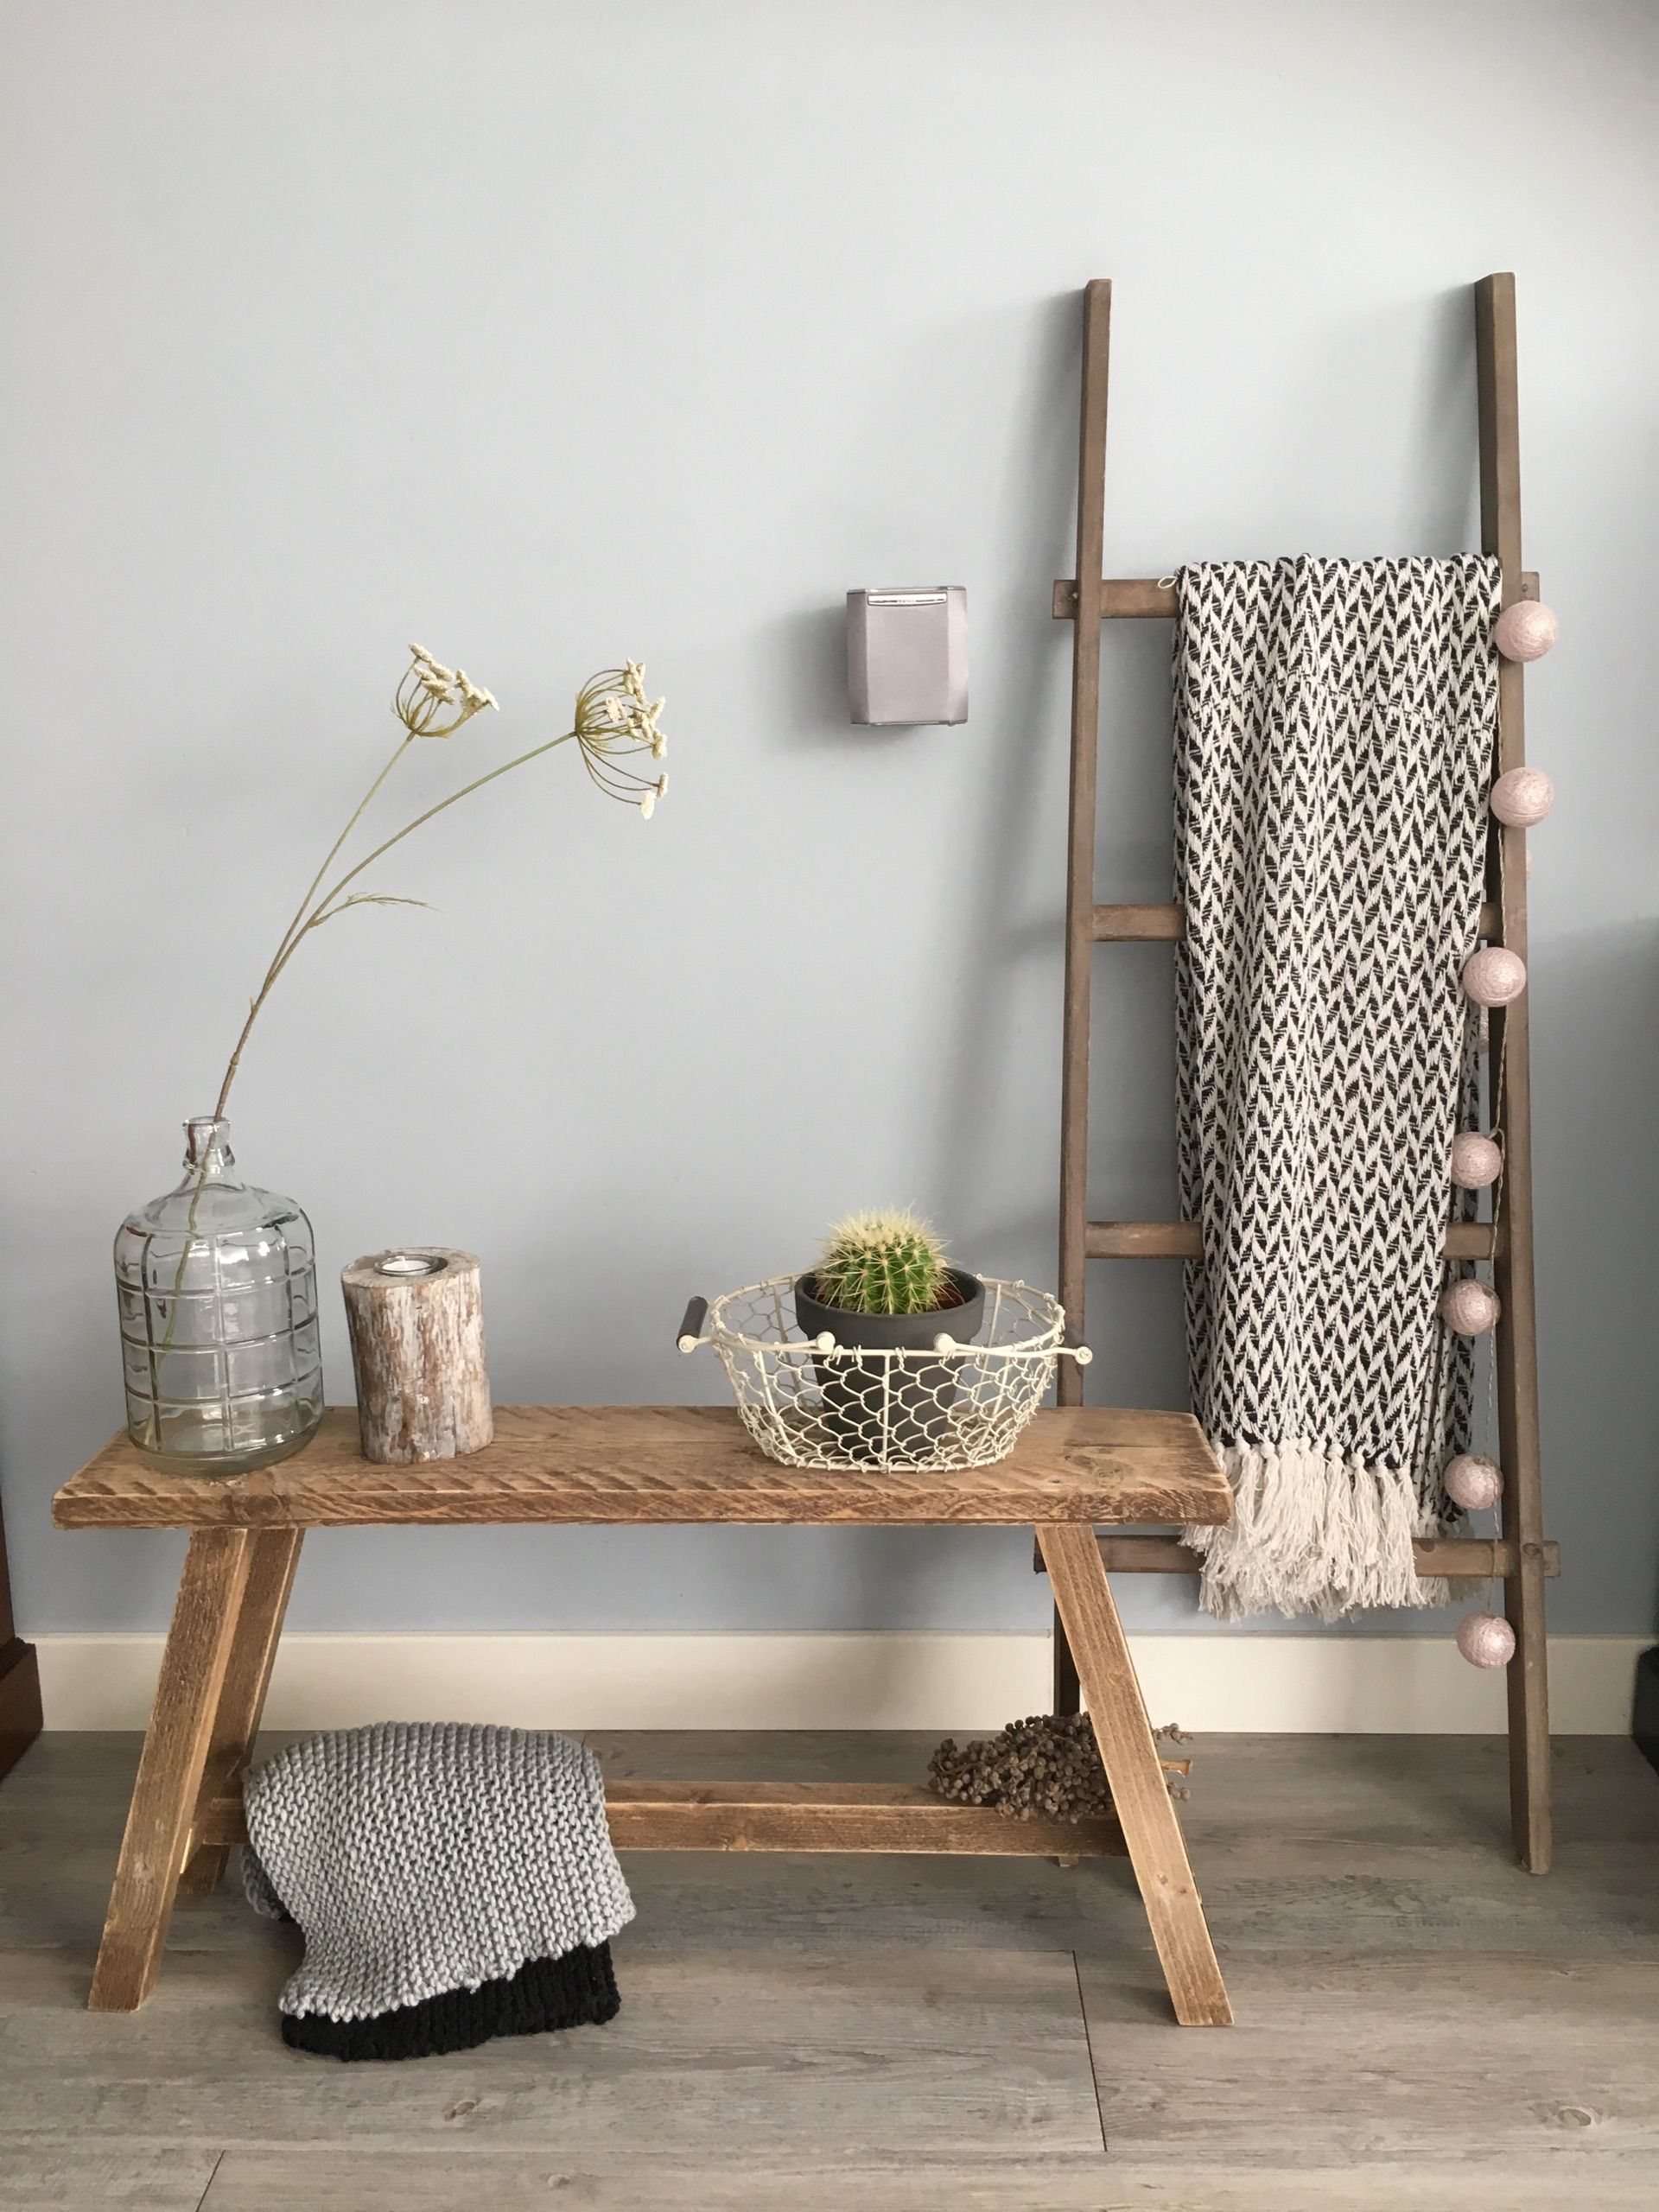 Interior decorating tips for living in the sweet spot colour